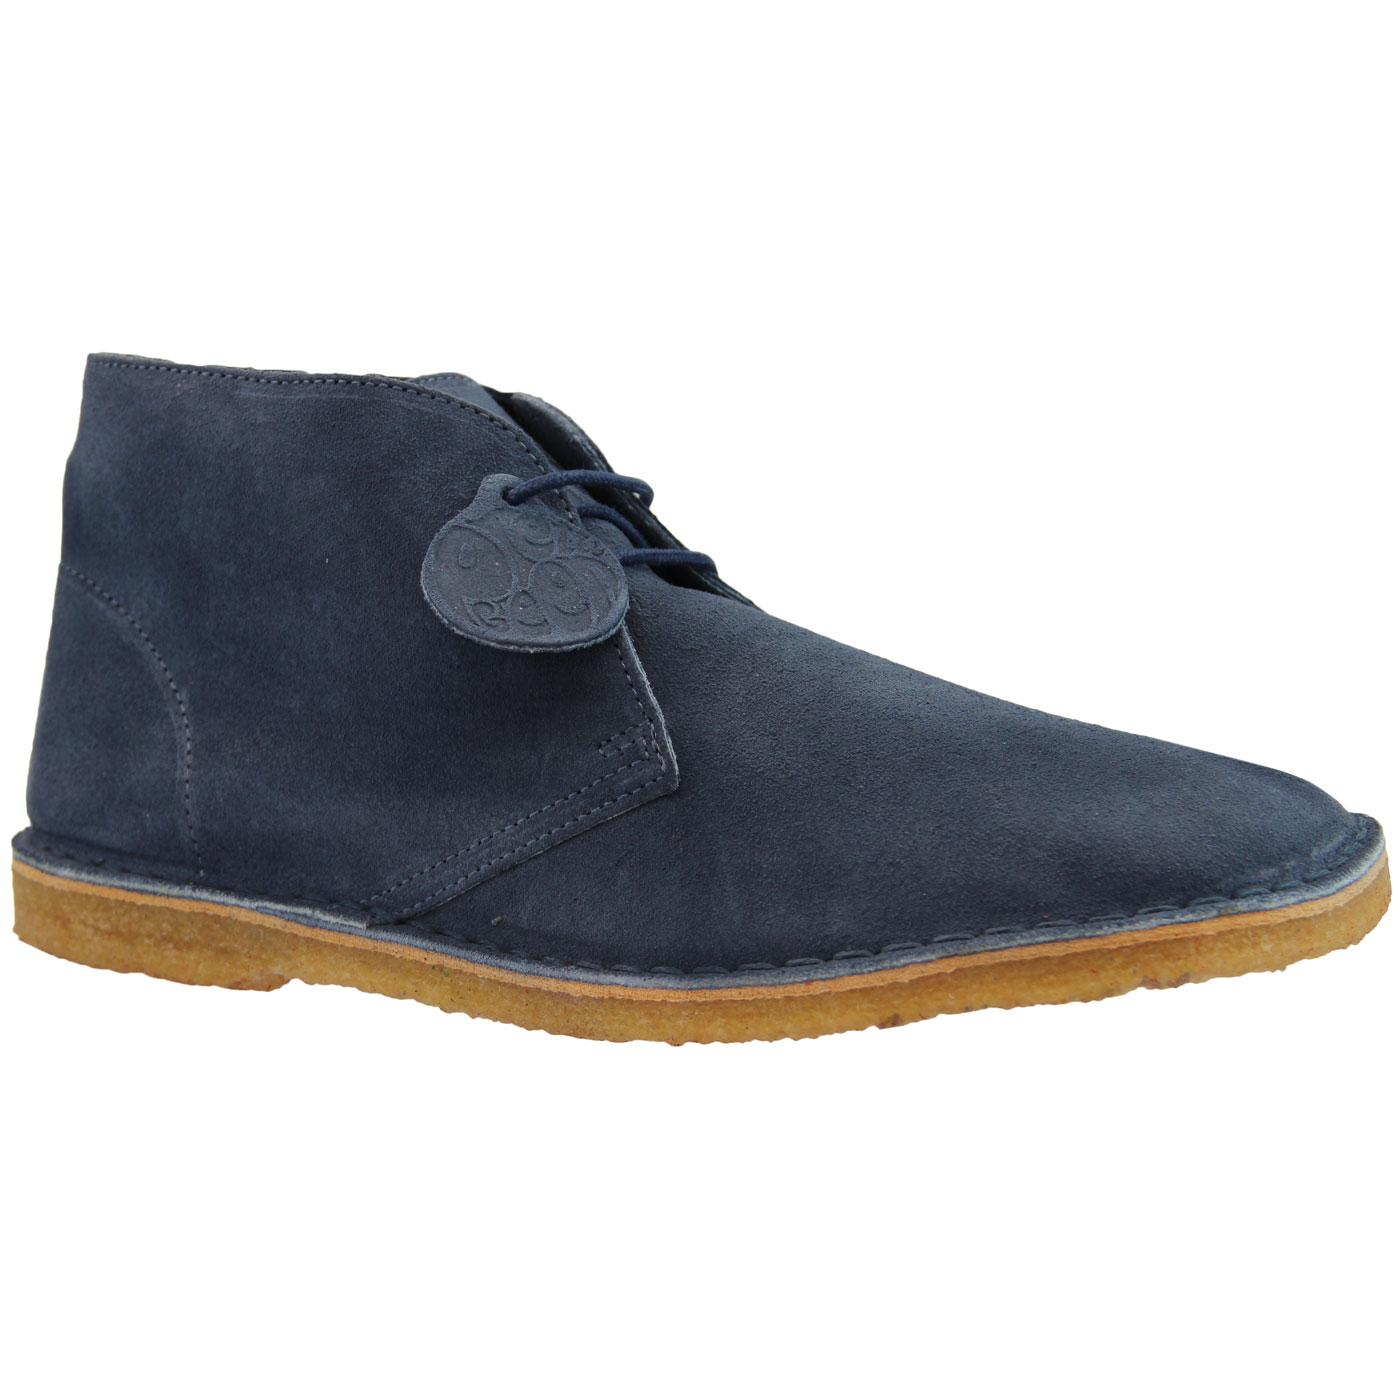 PRETTY GREEN Mod Suede Crepe Sole Desert Boots MB